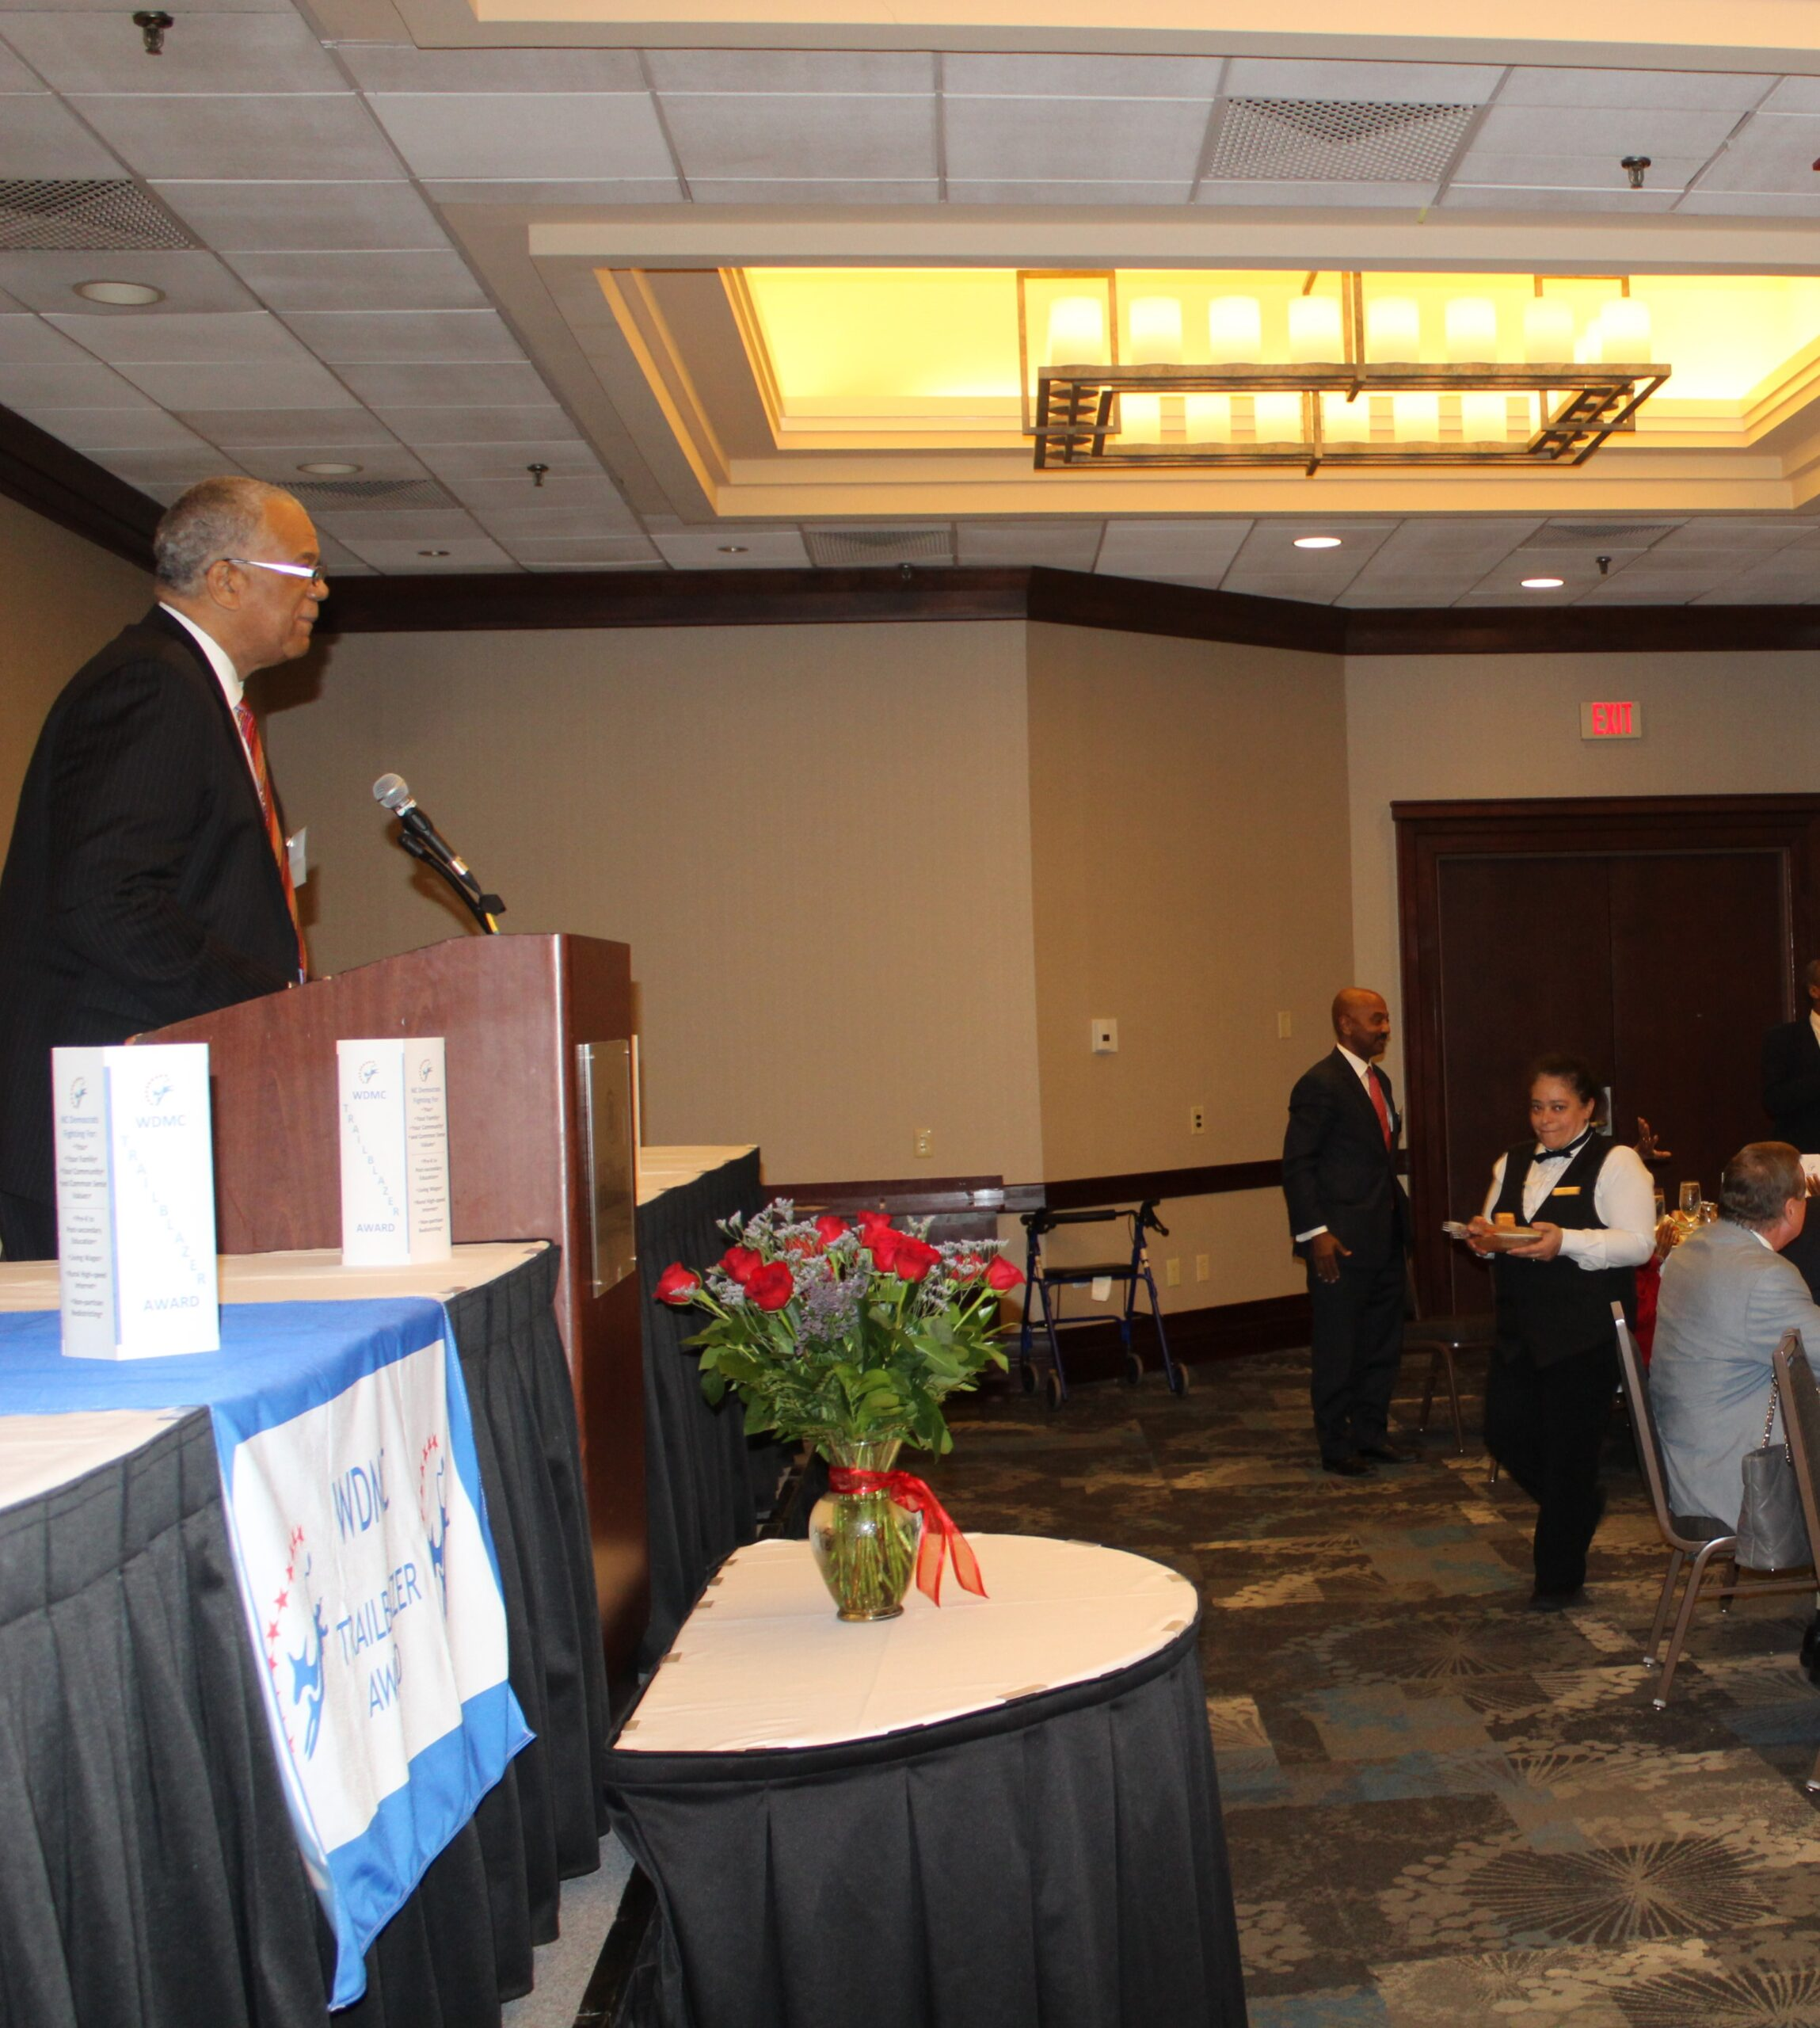 First Vice-President Robert Wilson recognizing elected officials and candidates